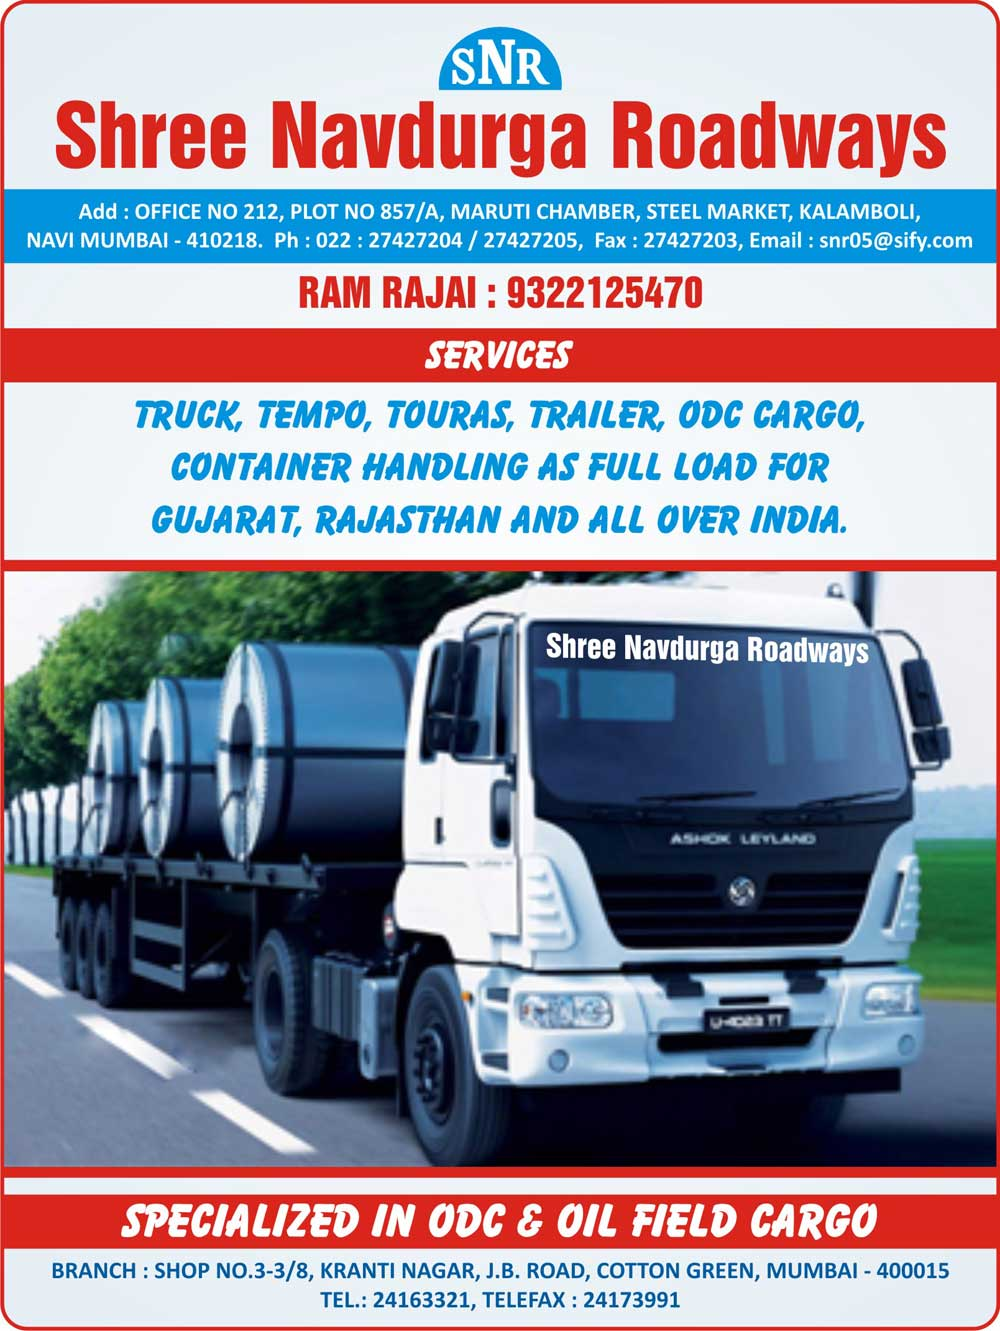 Shree Navdurga Roadways